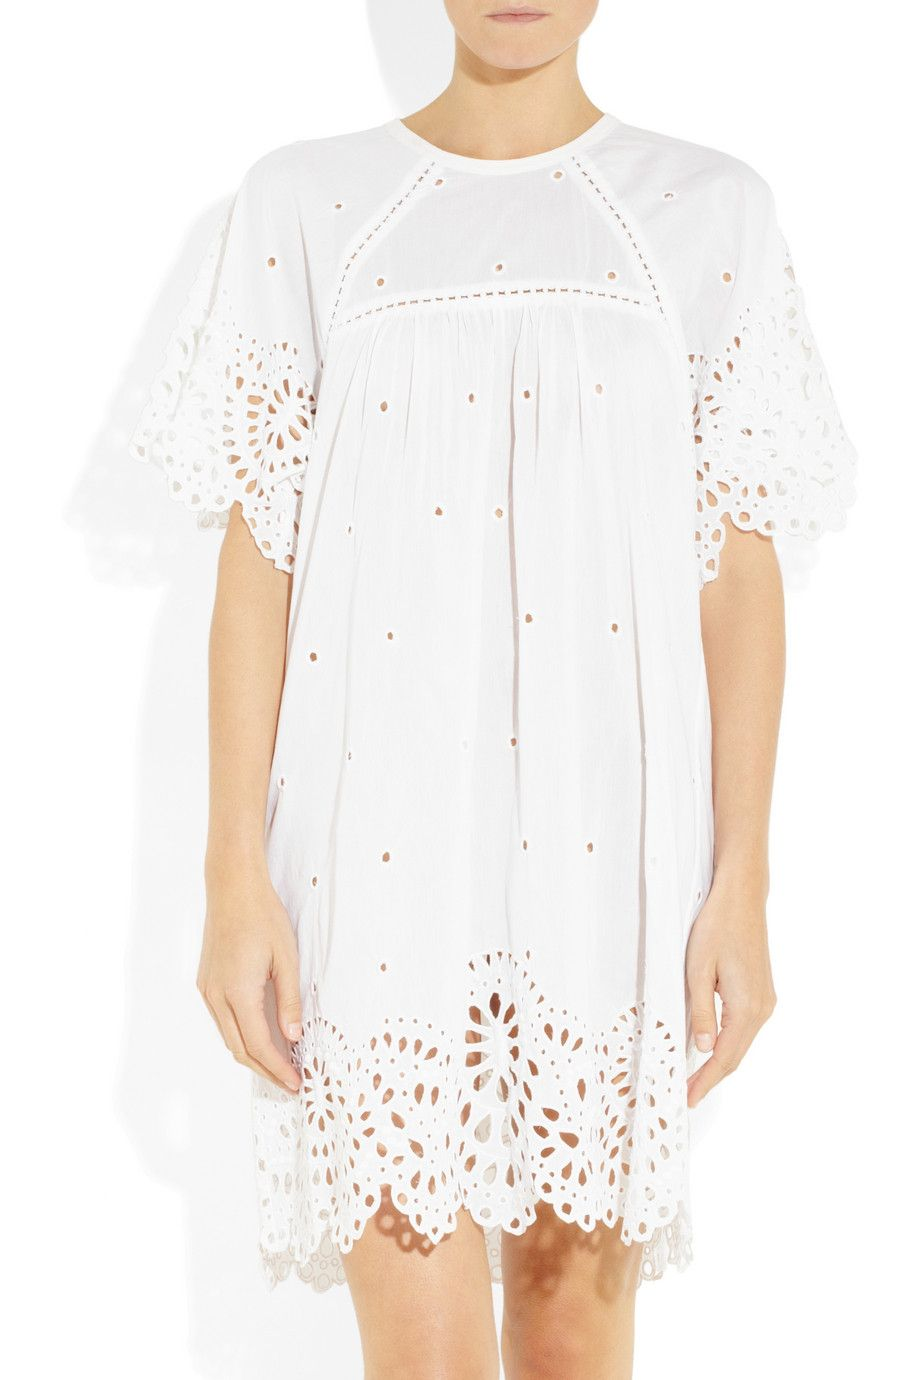 Fabuleux Isabel Marant | Dune broderie anglaise cotton-blend dress | NET-A  KV08